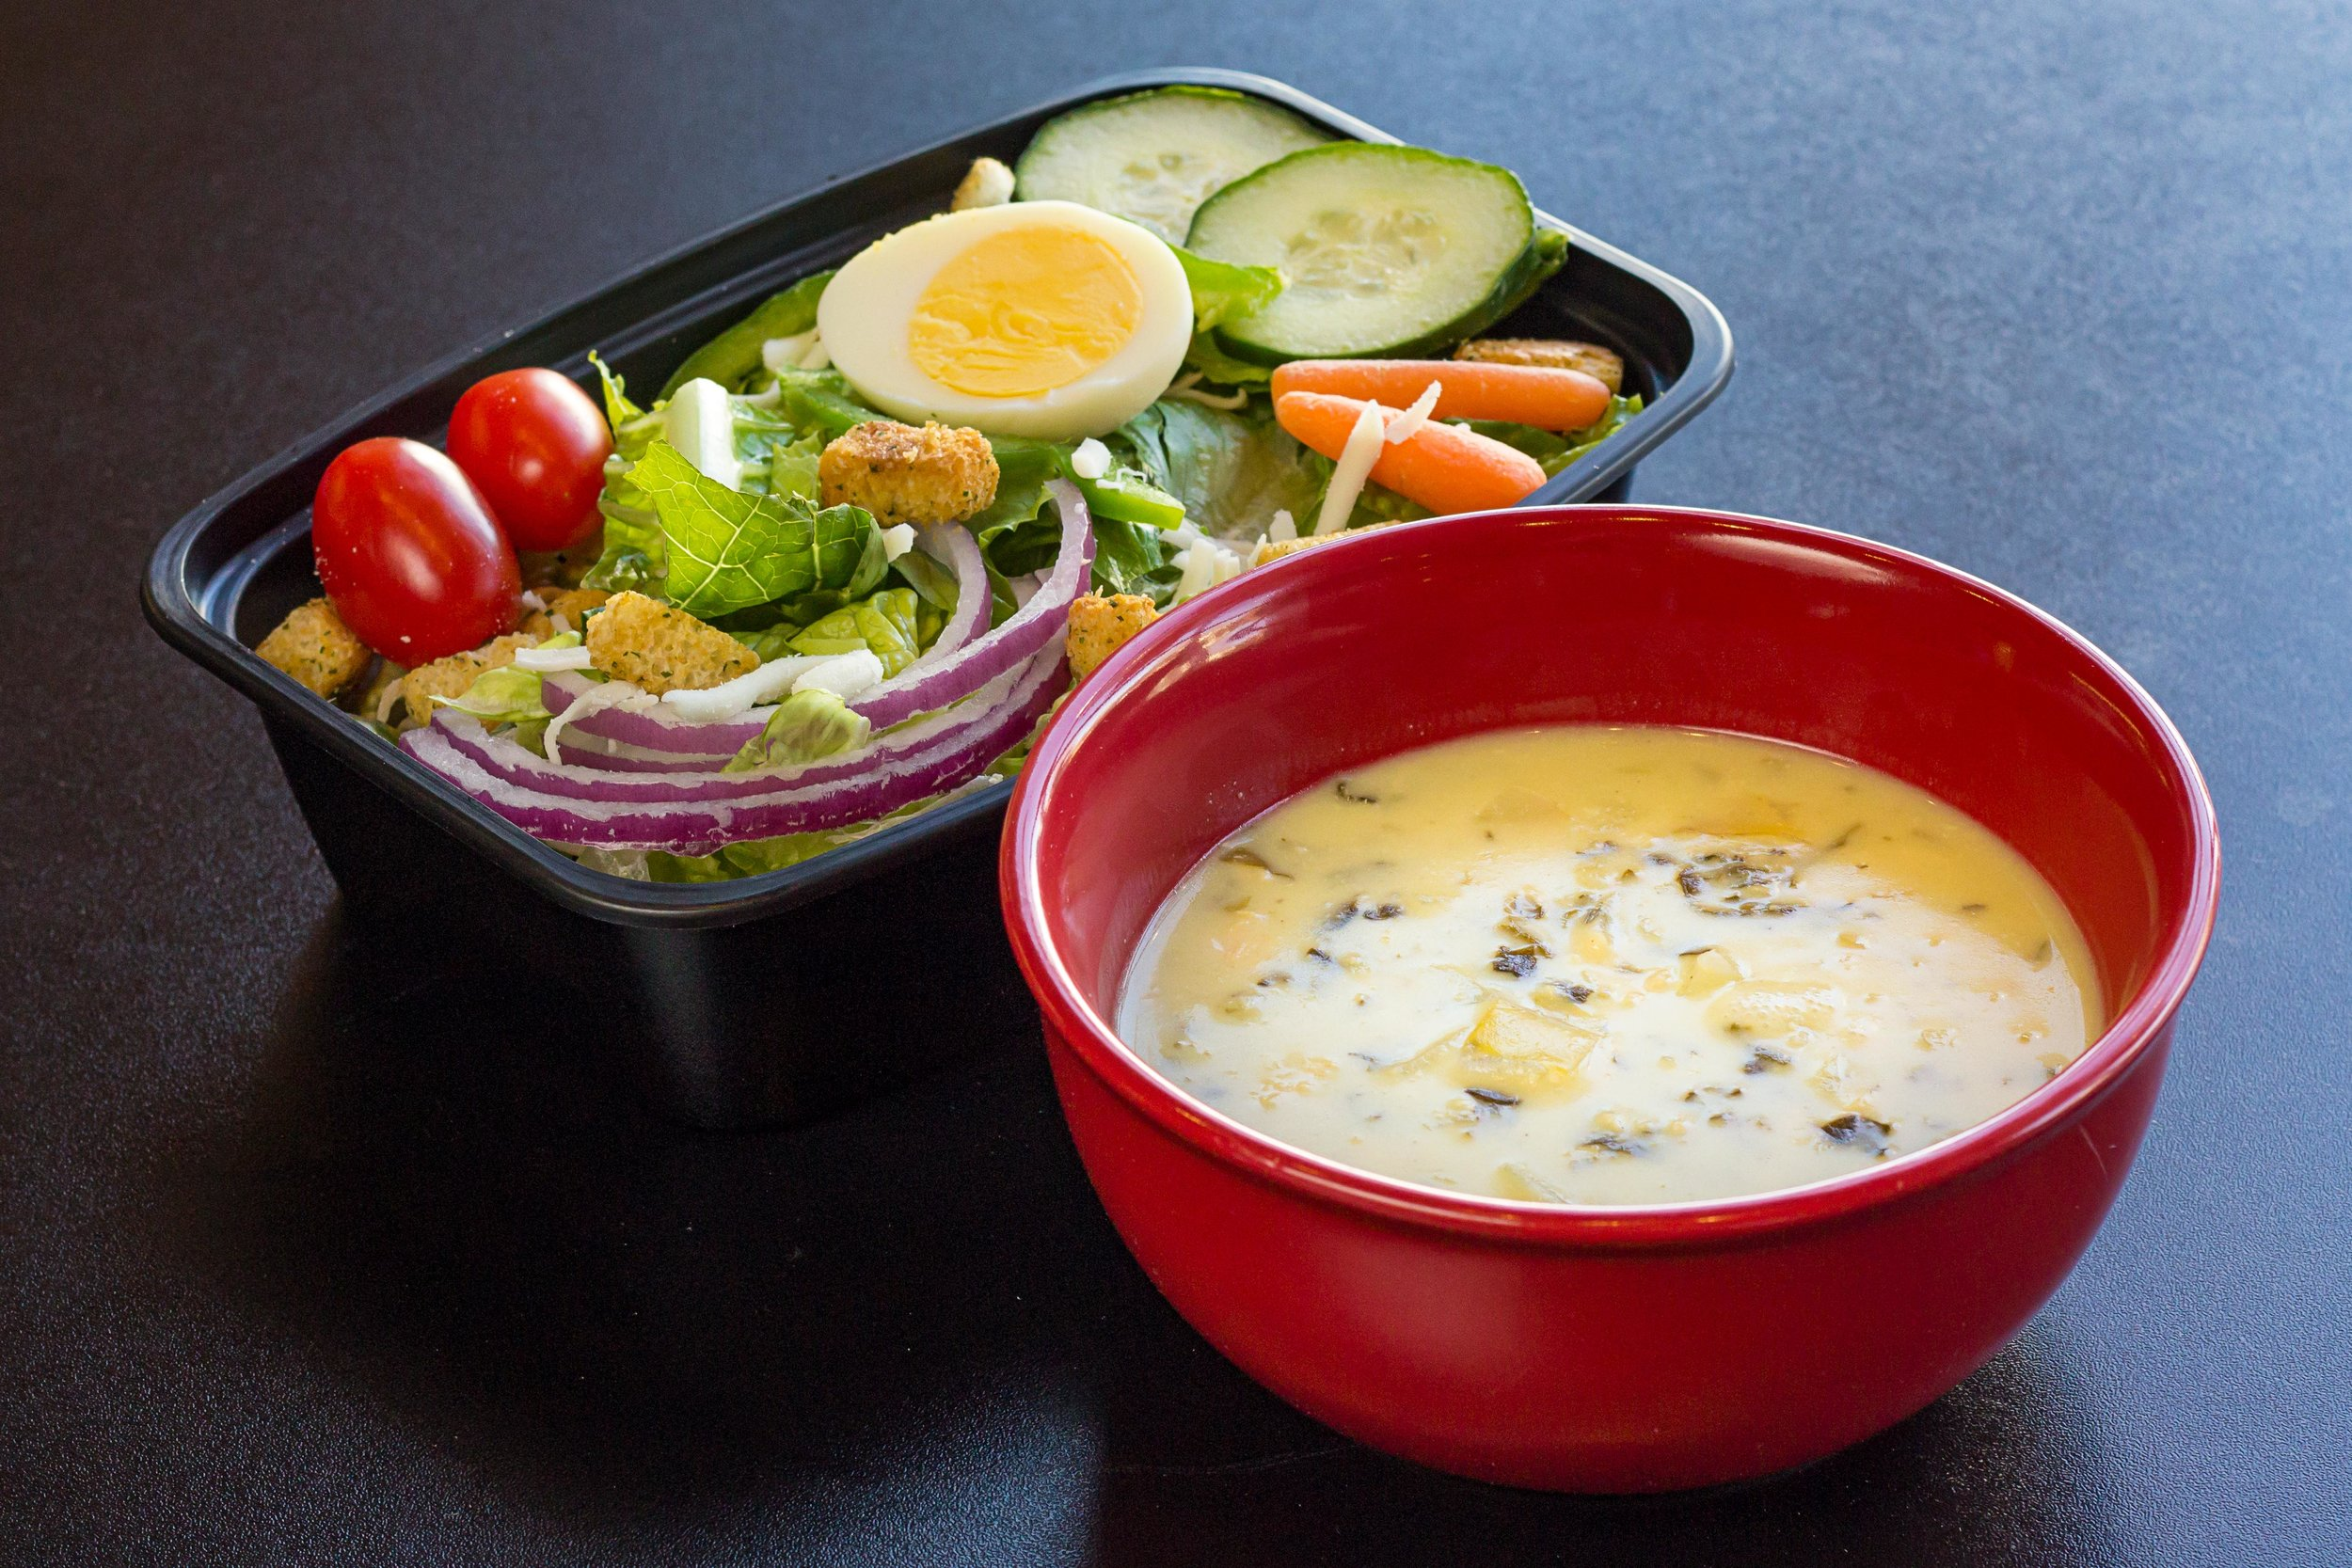 Half Garden Salad & Chicken Artichoke Florentine -Soup & salad a wonderful combination, try one of our delicious stews today!